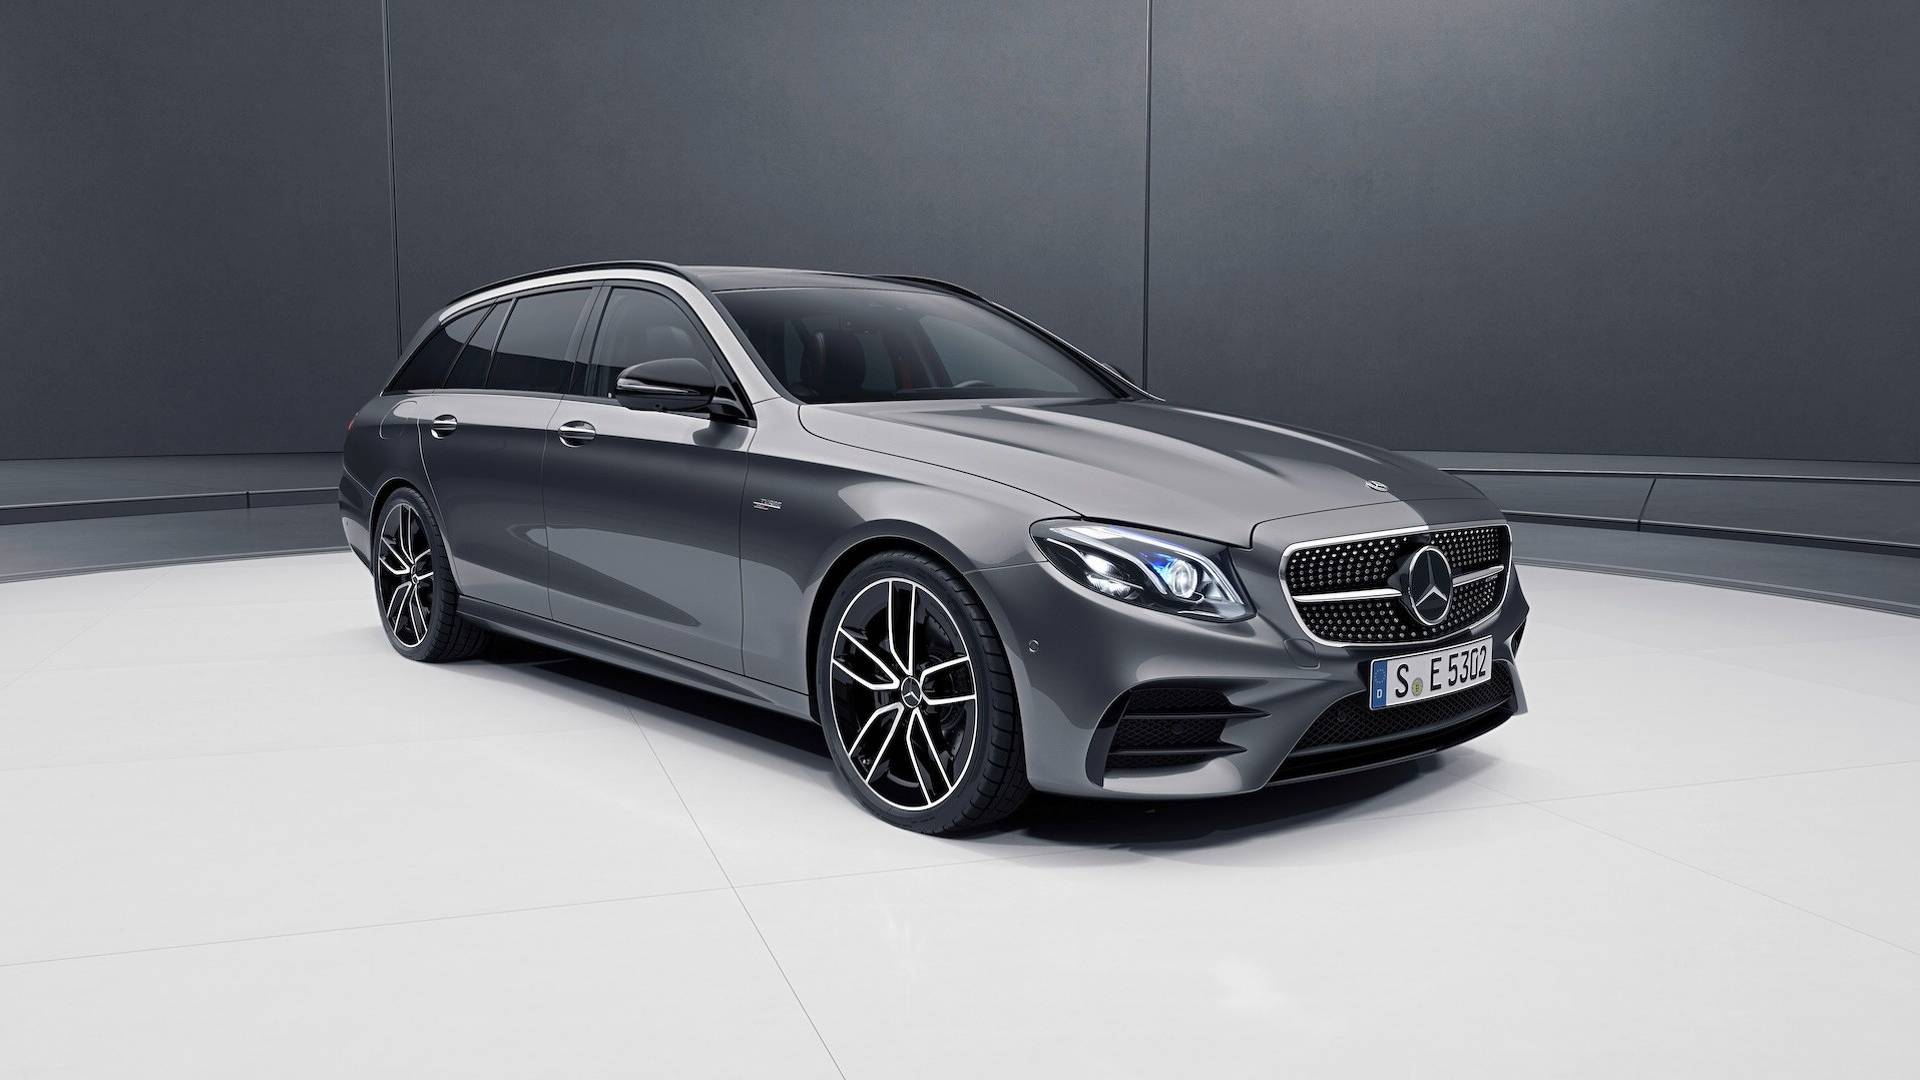 The 2018 Mercedes-AMG E63 S wagon is the family car you